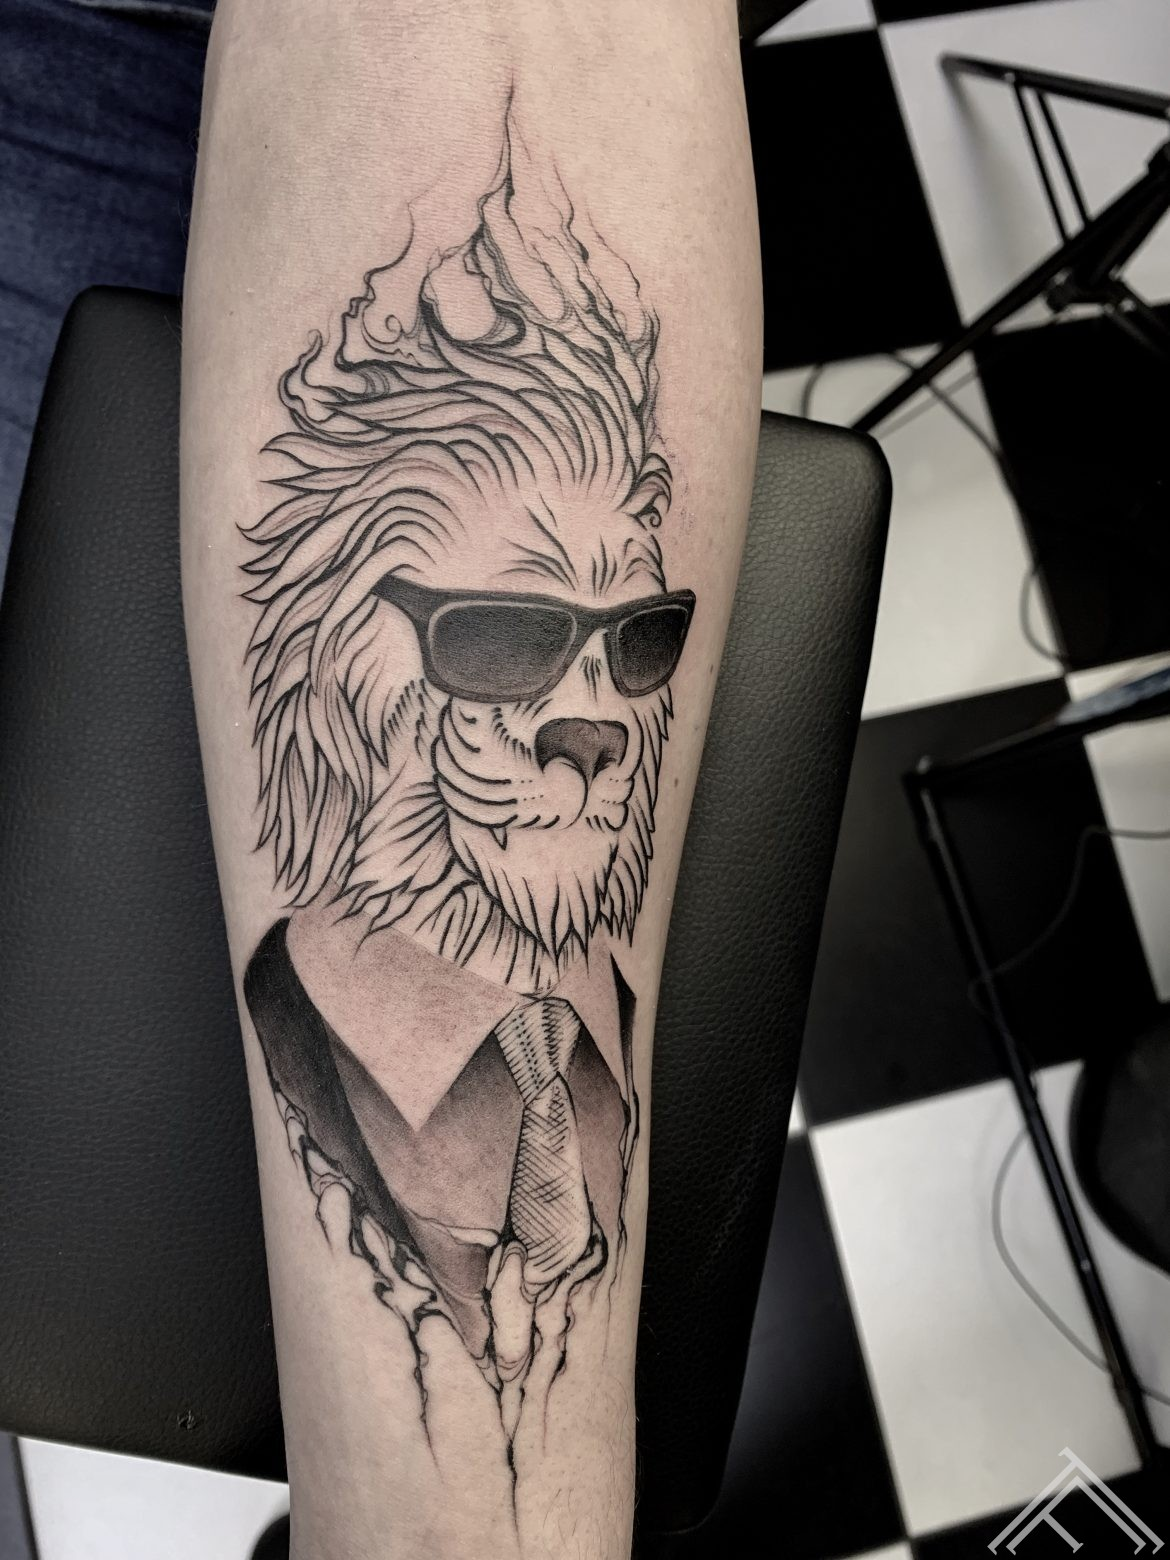 lion-sunglases-animal-graphic-cartoon-dmitrijsrazins-tattoo-tattoofrequency-art